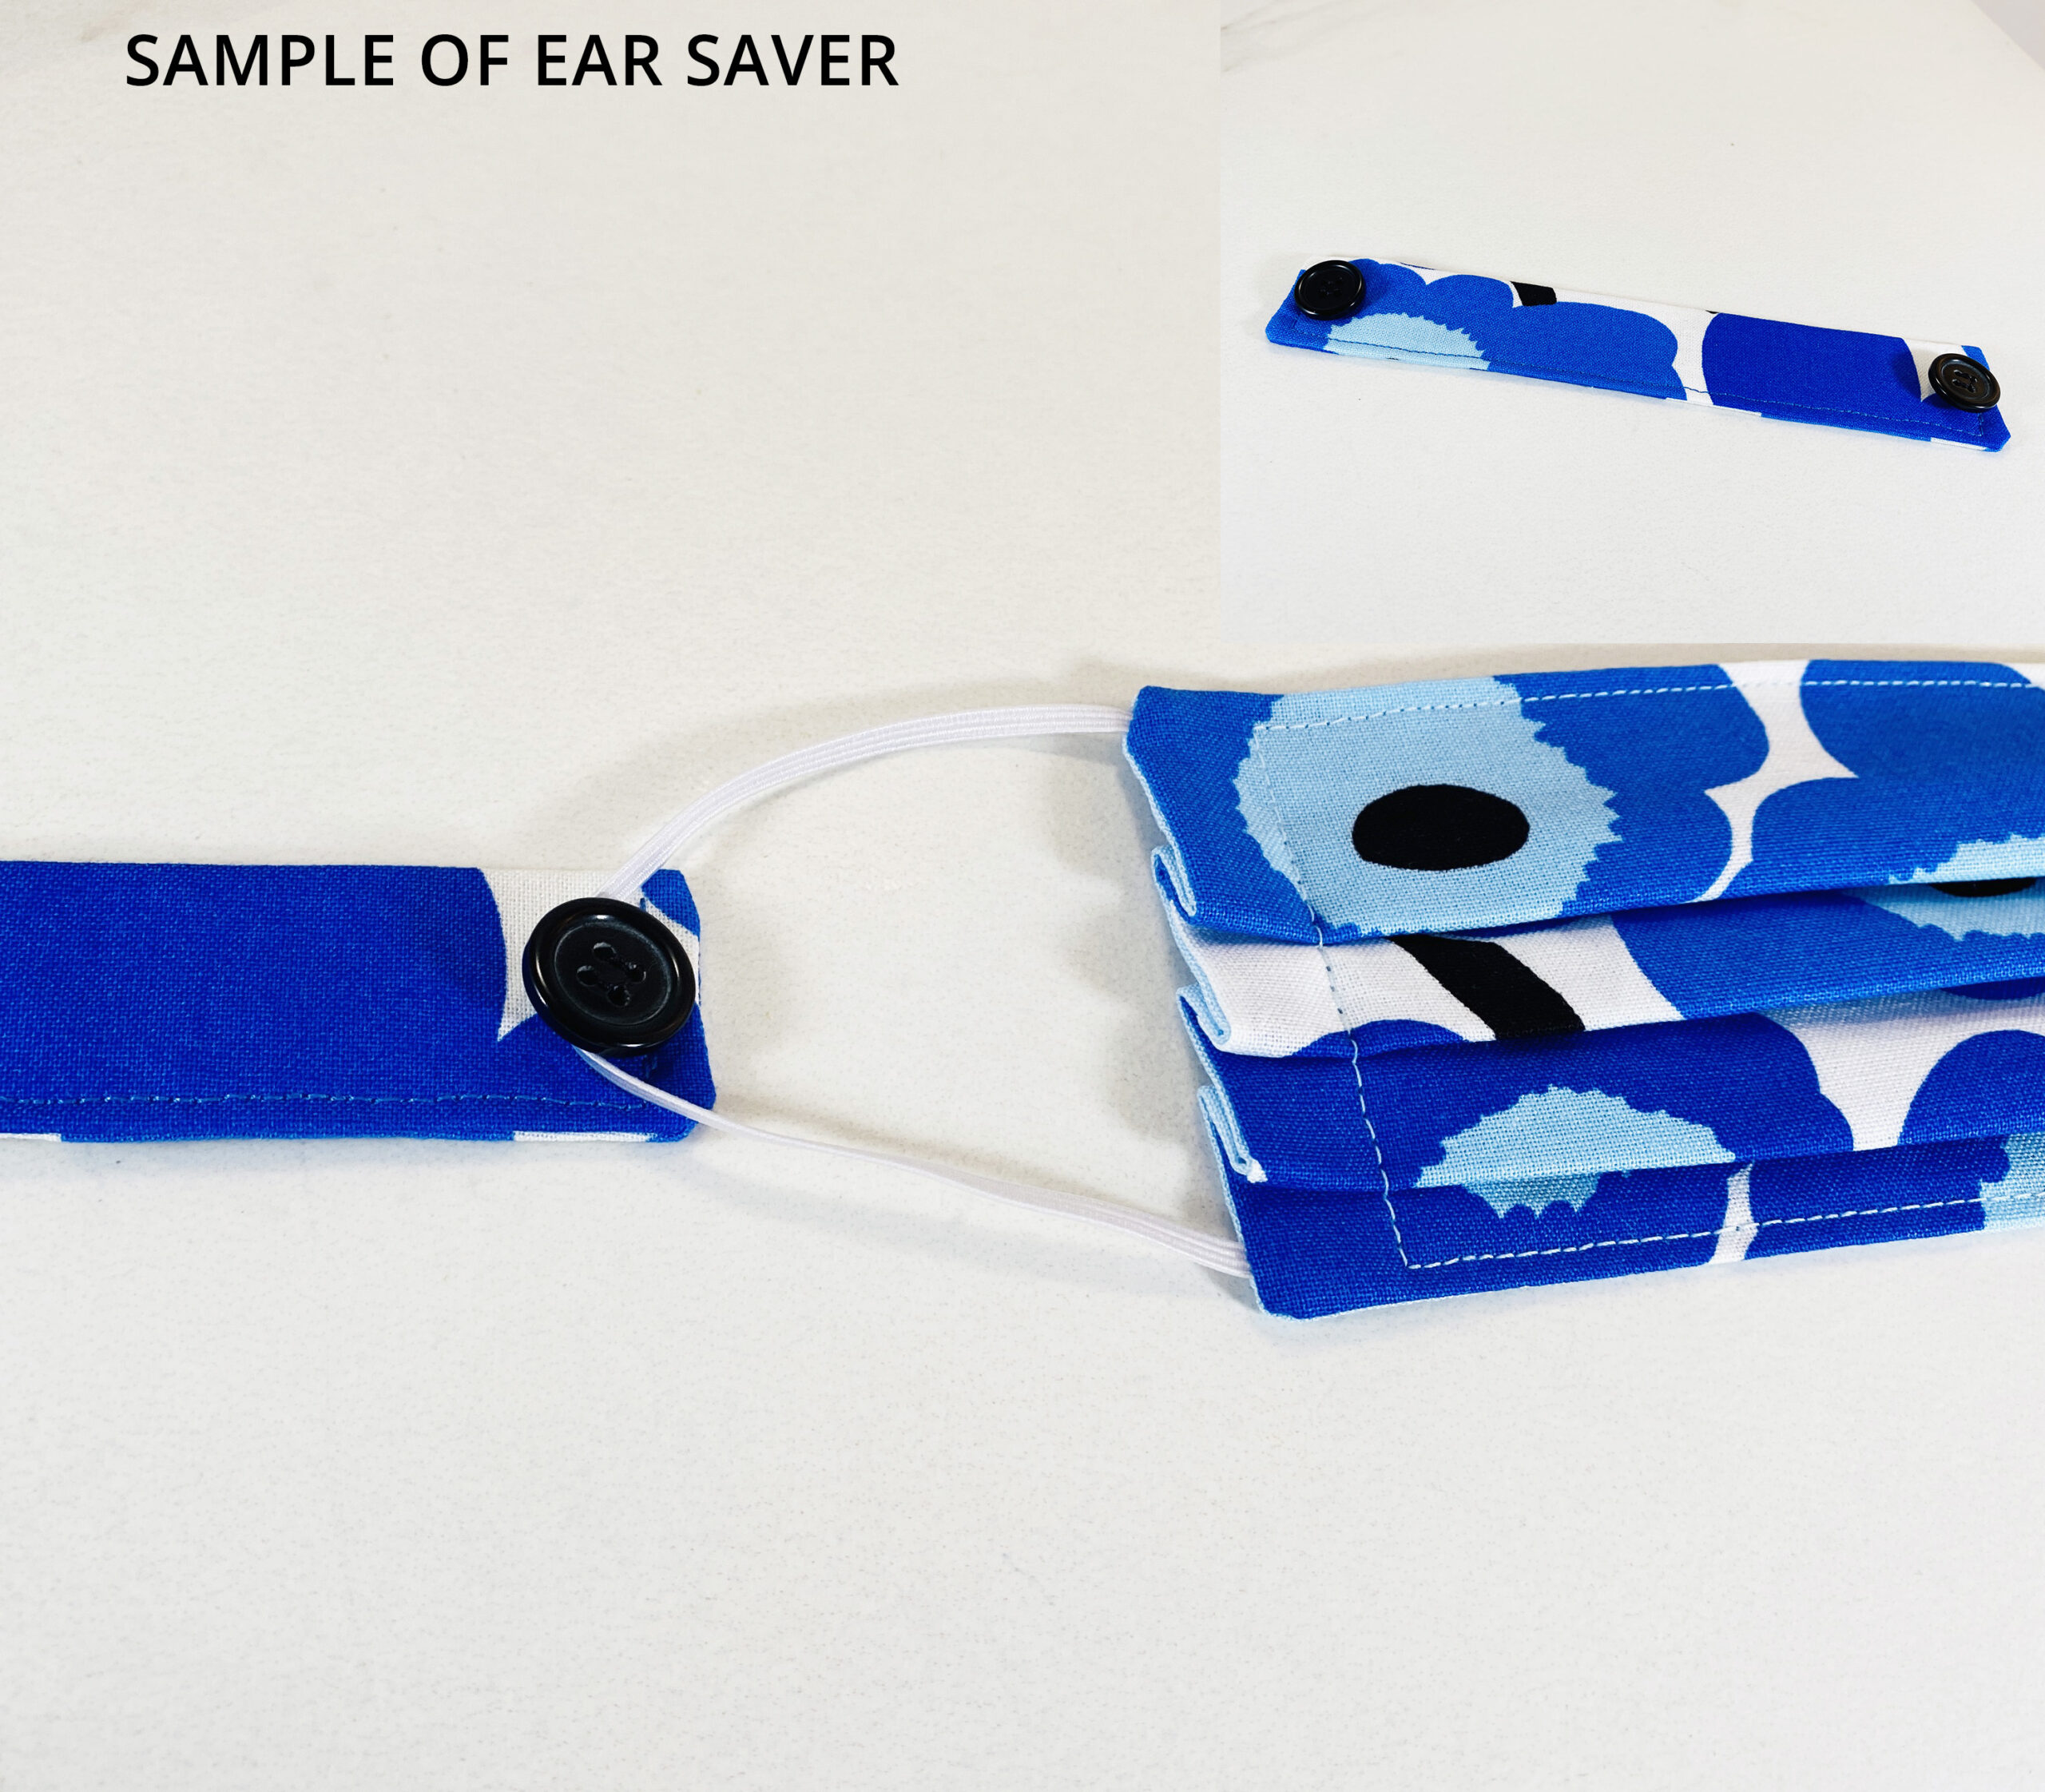 EAR SAVER FOR FACE MASK